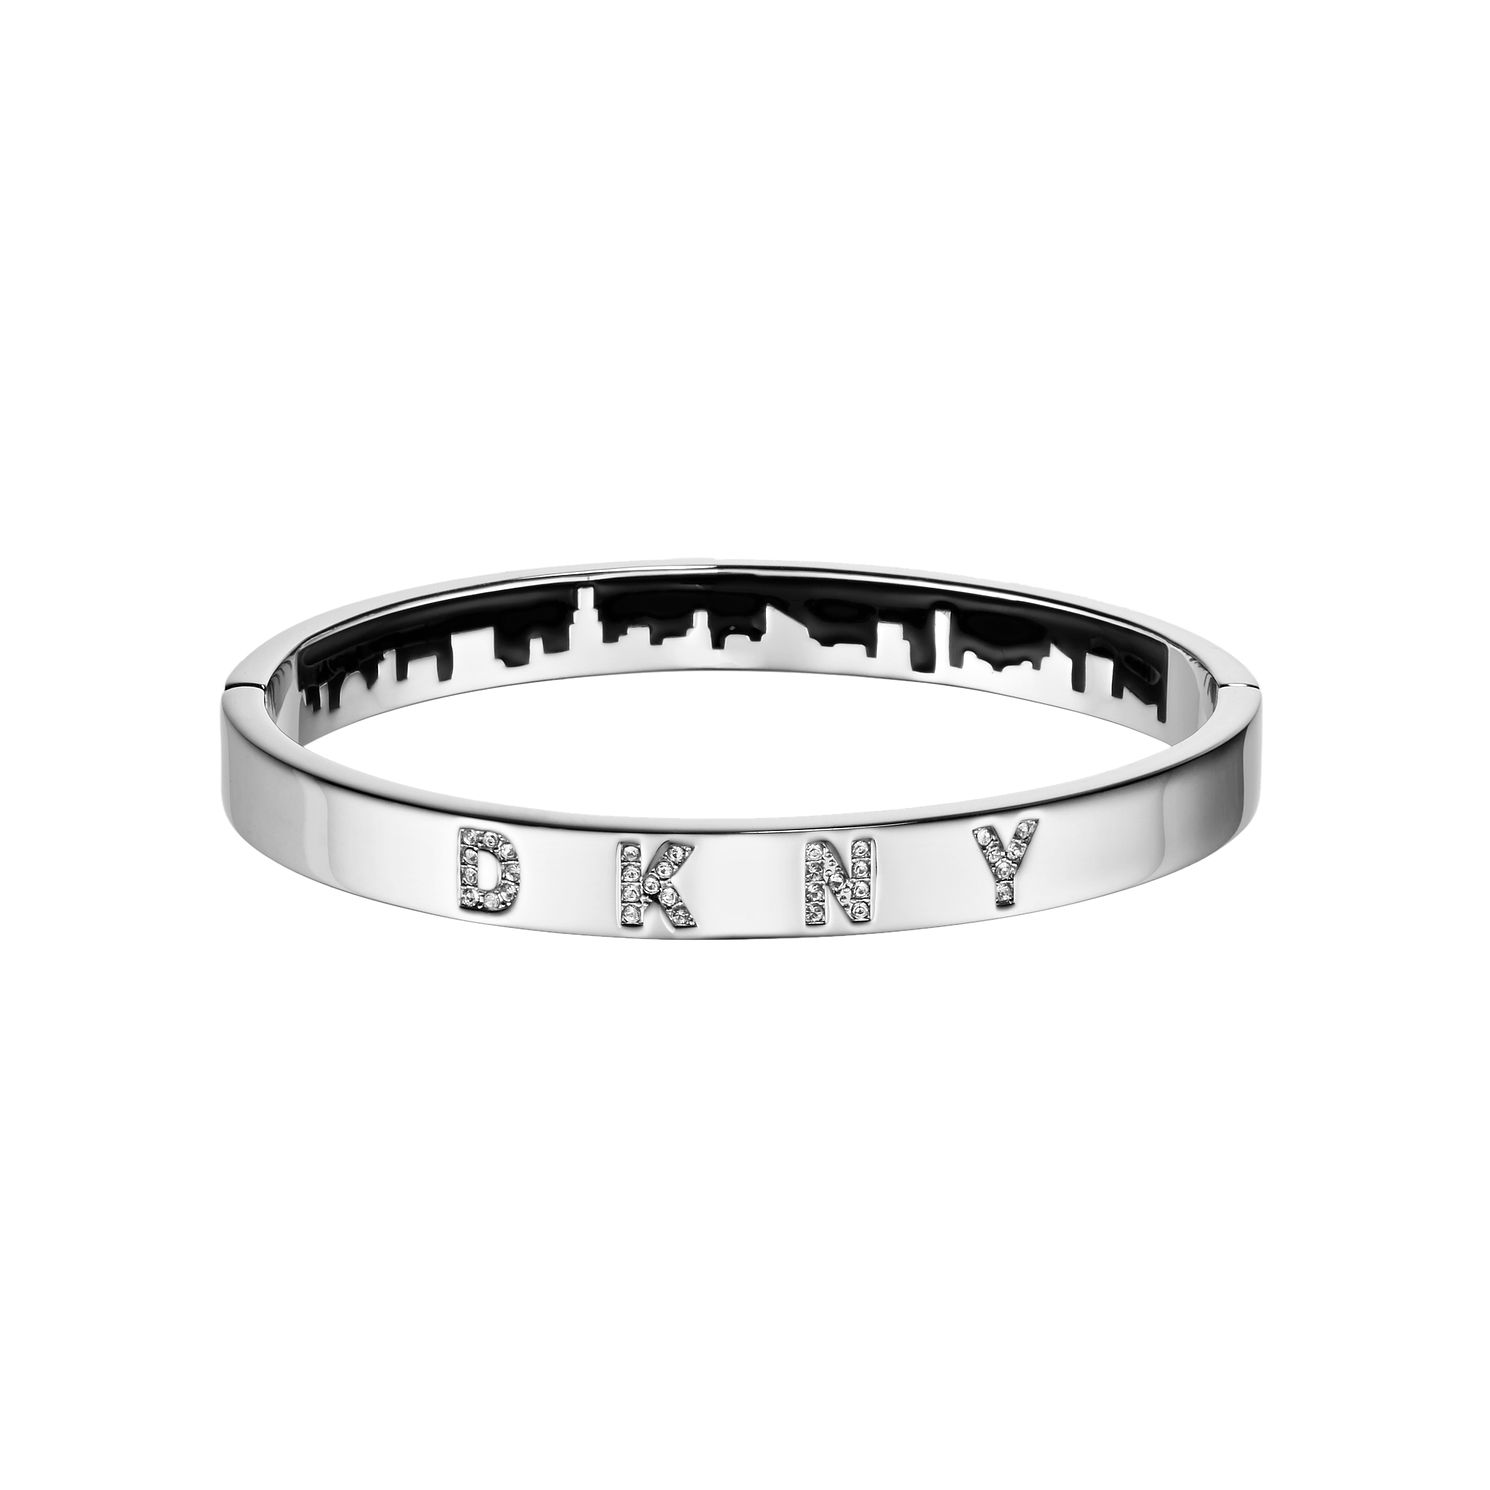 DKNY Skyline Rhodium Plated Swarovski Crystal Bracelet - Product number 5888557